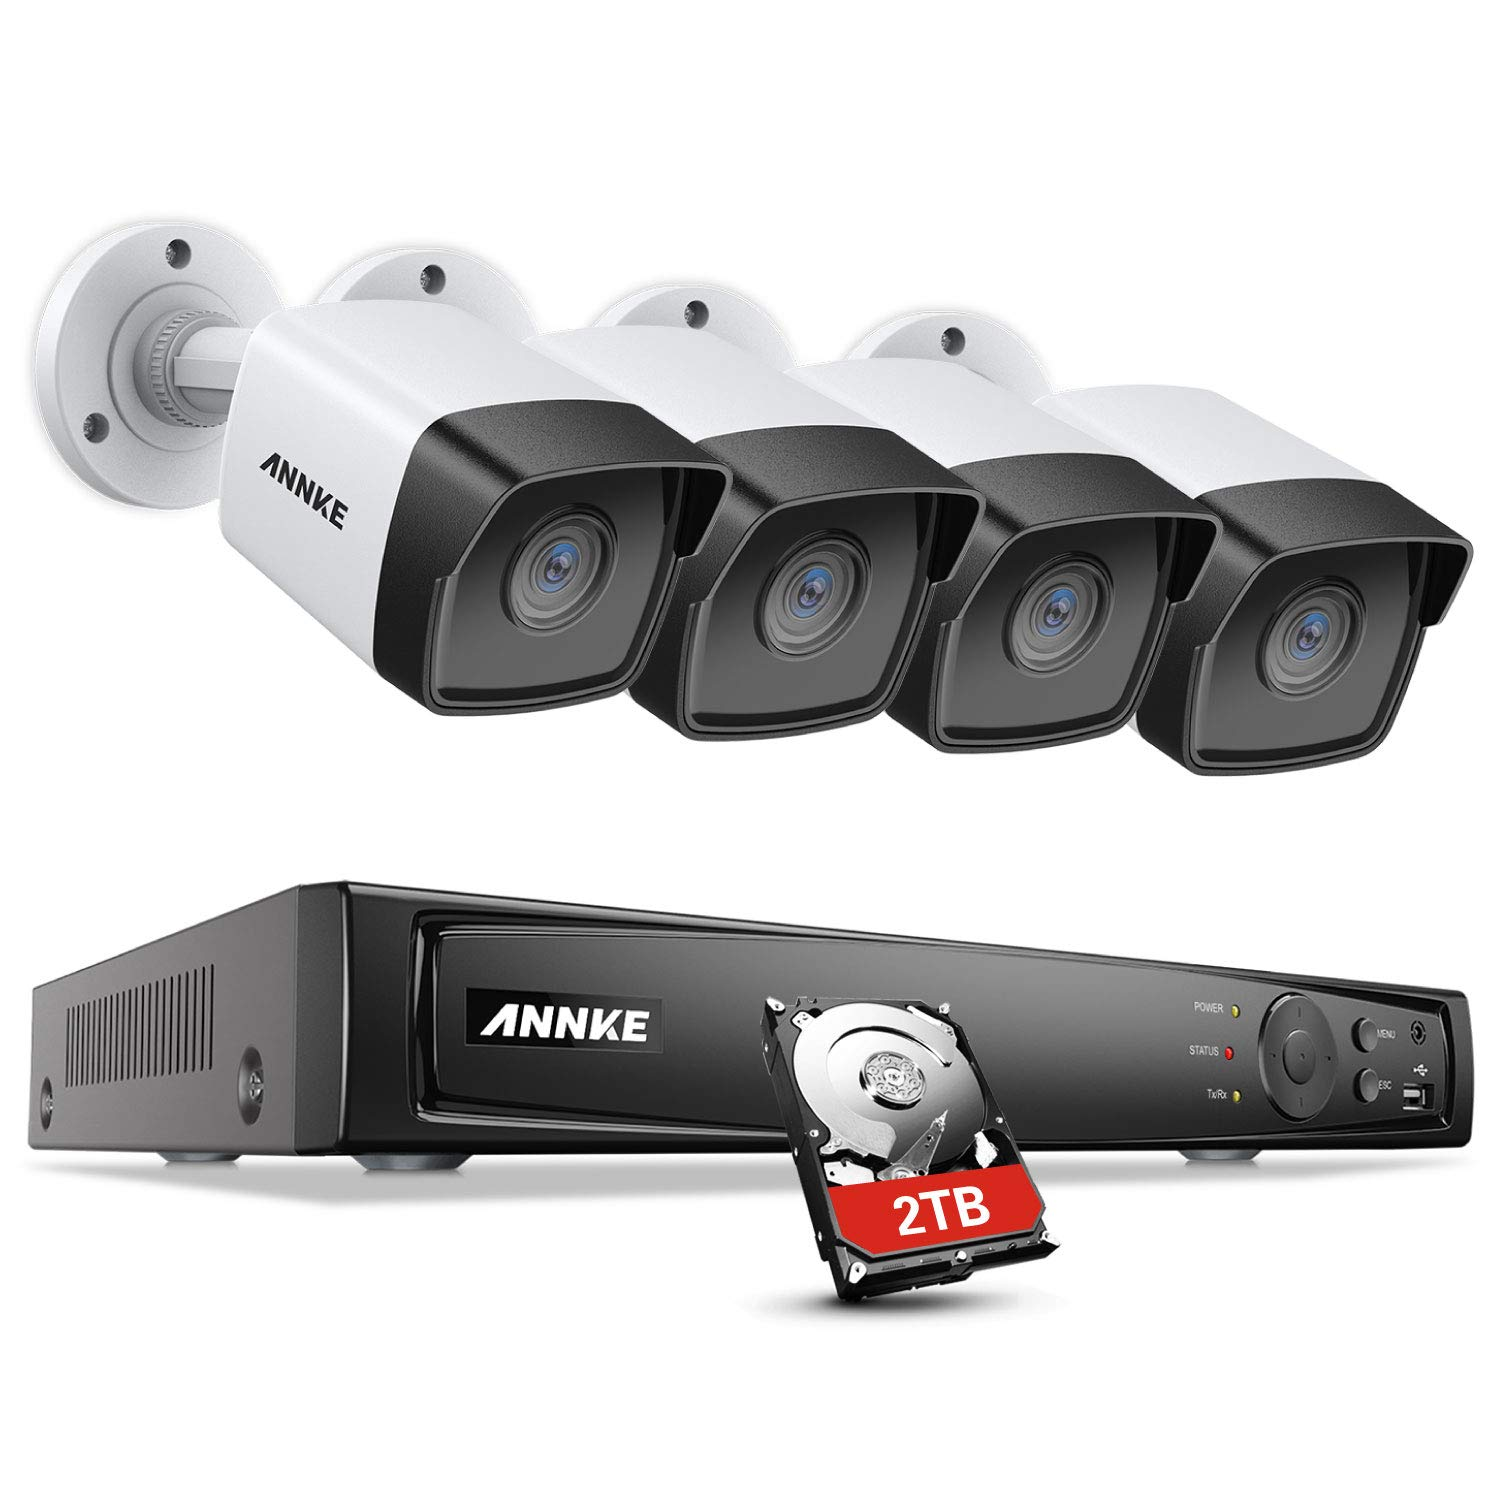 ANNKE 5MP PoE Home Security Camera System H.265+ 8CH Ultra HD 4K NVR, 4X 5MP Outdoor PoE IP Cameras, Starlight Color Night Vision, 2TB HDD for Long Time Recording, Support ONVIF Motion Detection